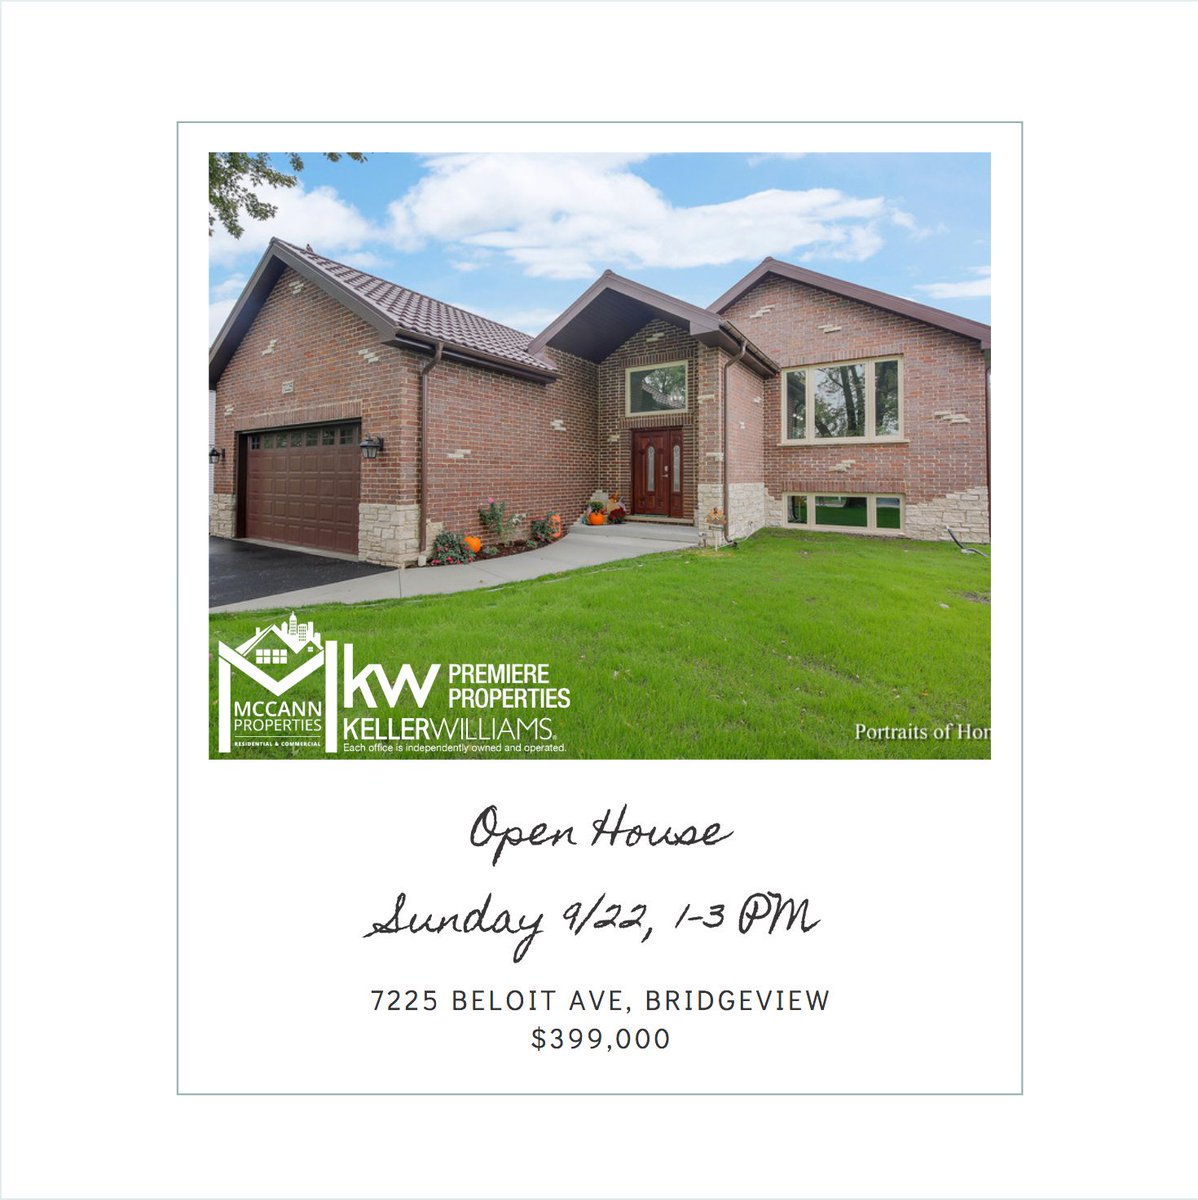 Open House, price adjusted! Don't miss this Bridgeview Beauty this Sunday 1-3pm.More info here: http://bit.ly/7225Beloit   #openhouse #newbuild #newconstruction #mccannproperties #kellerwilliamspremiereproperties #sundayfunday #chicago #forsale #justreduced